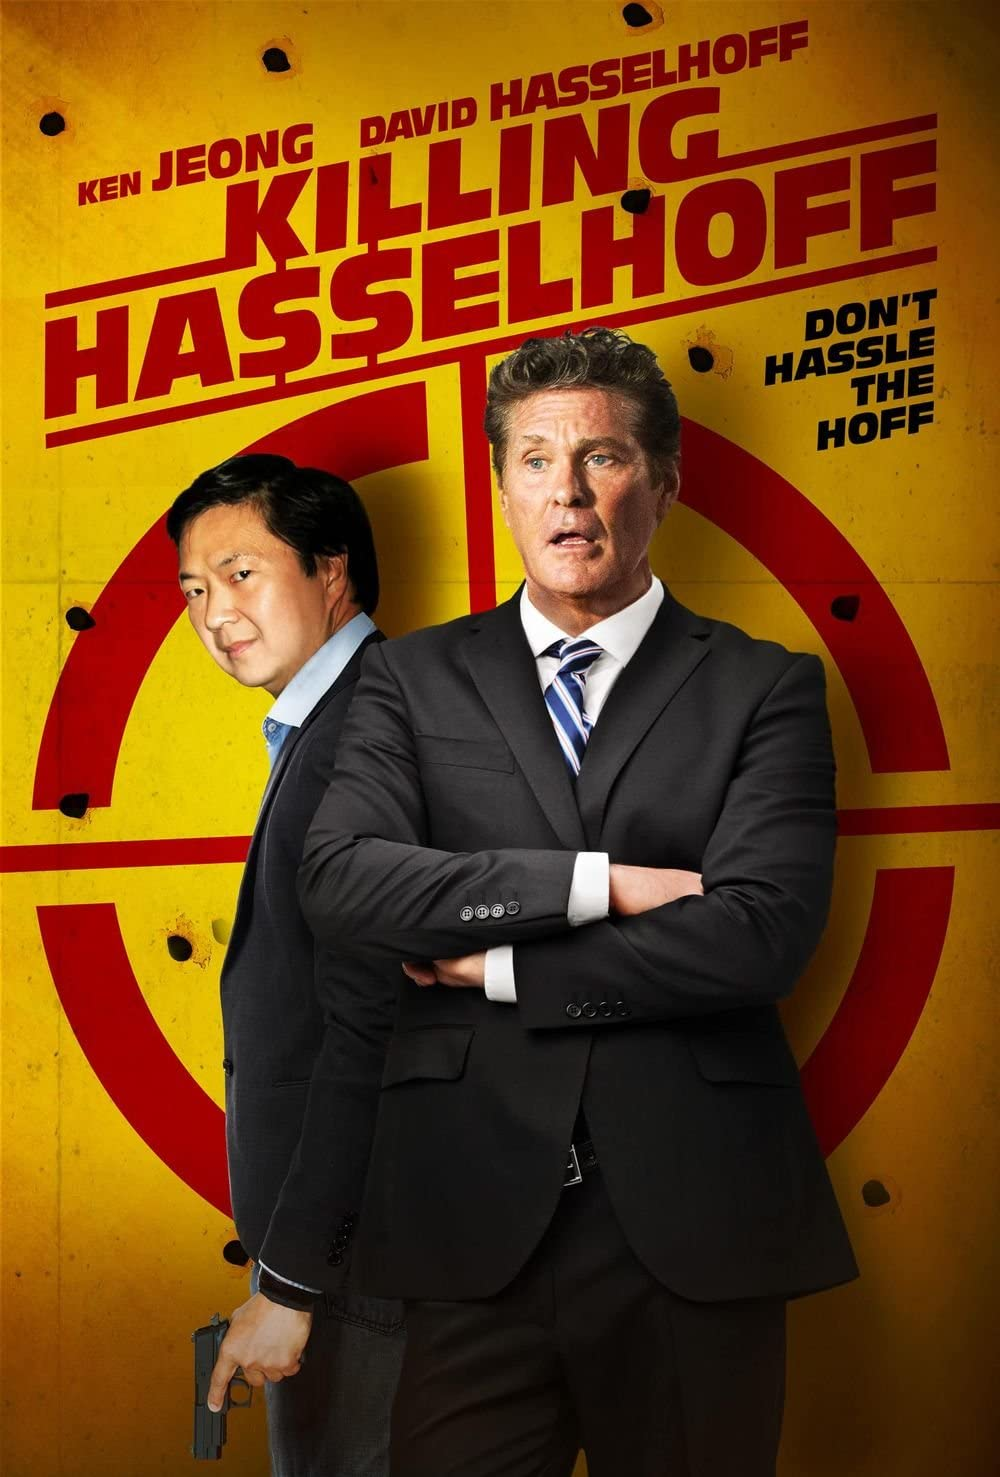 Amazon.com: Killing Hasselhoff Movie Poster 18 x 28 Inches ...